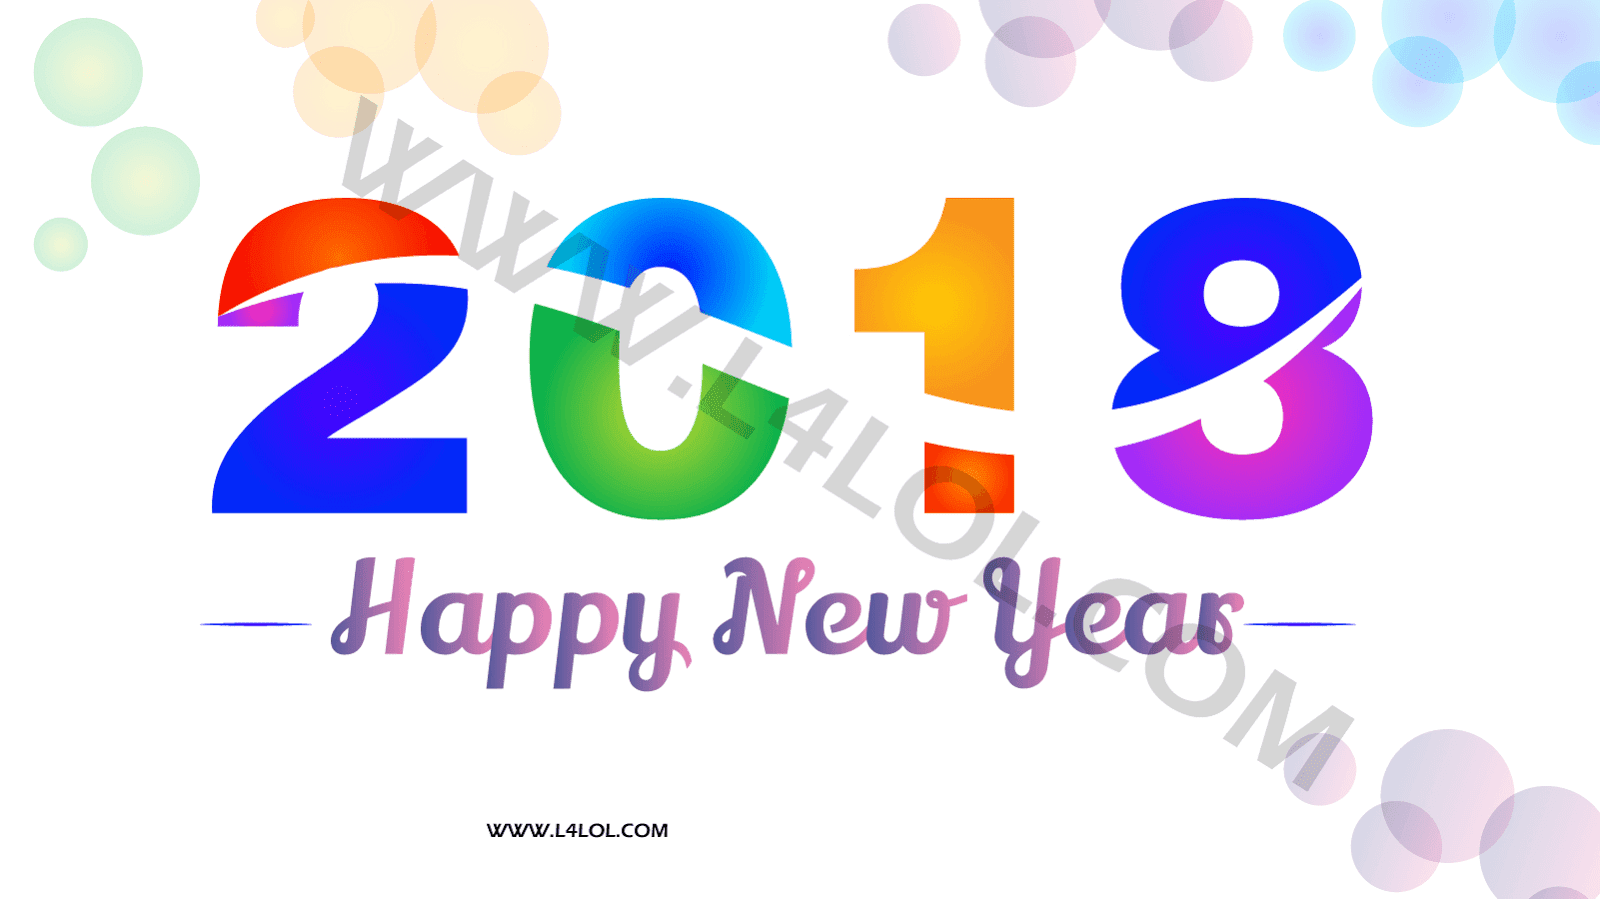 Happy New Year 2018 HD Wallpaper Images Download [HD Wallpapers]